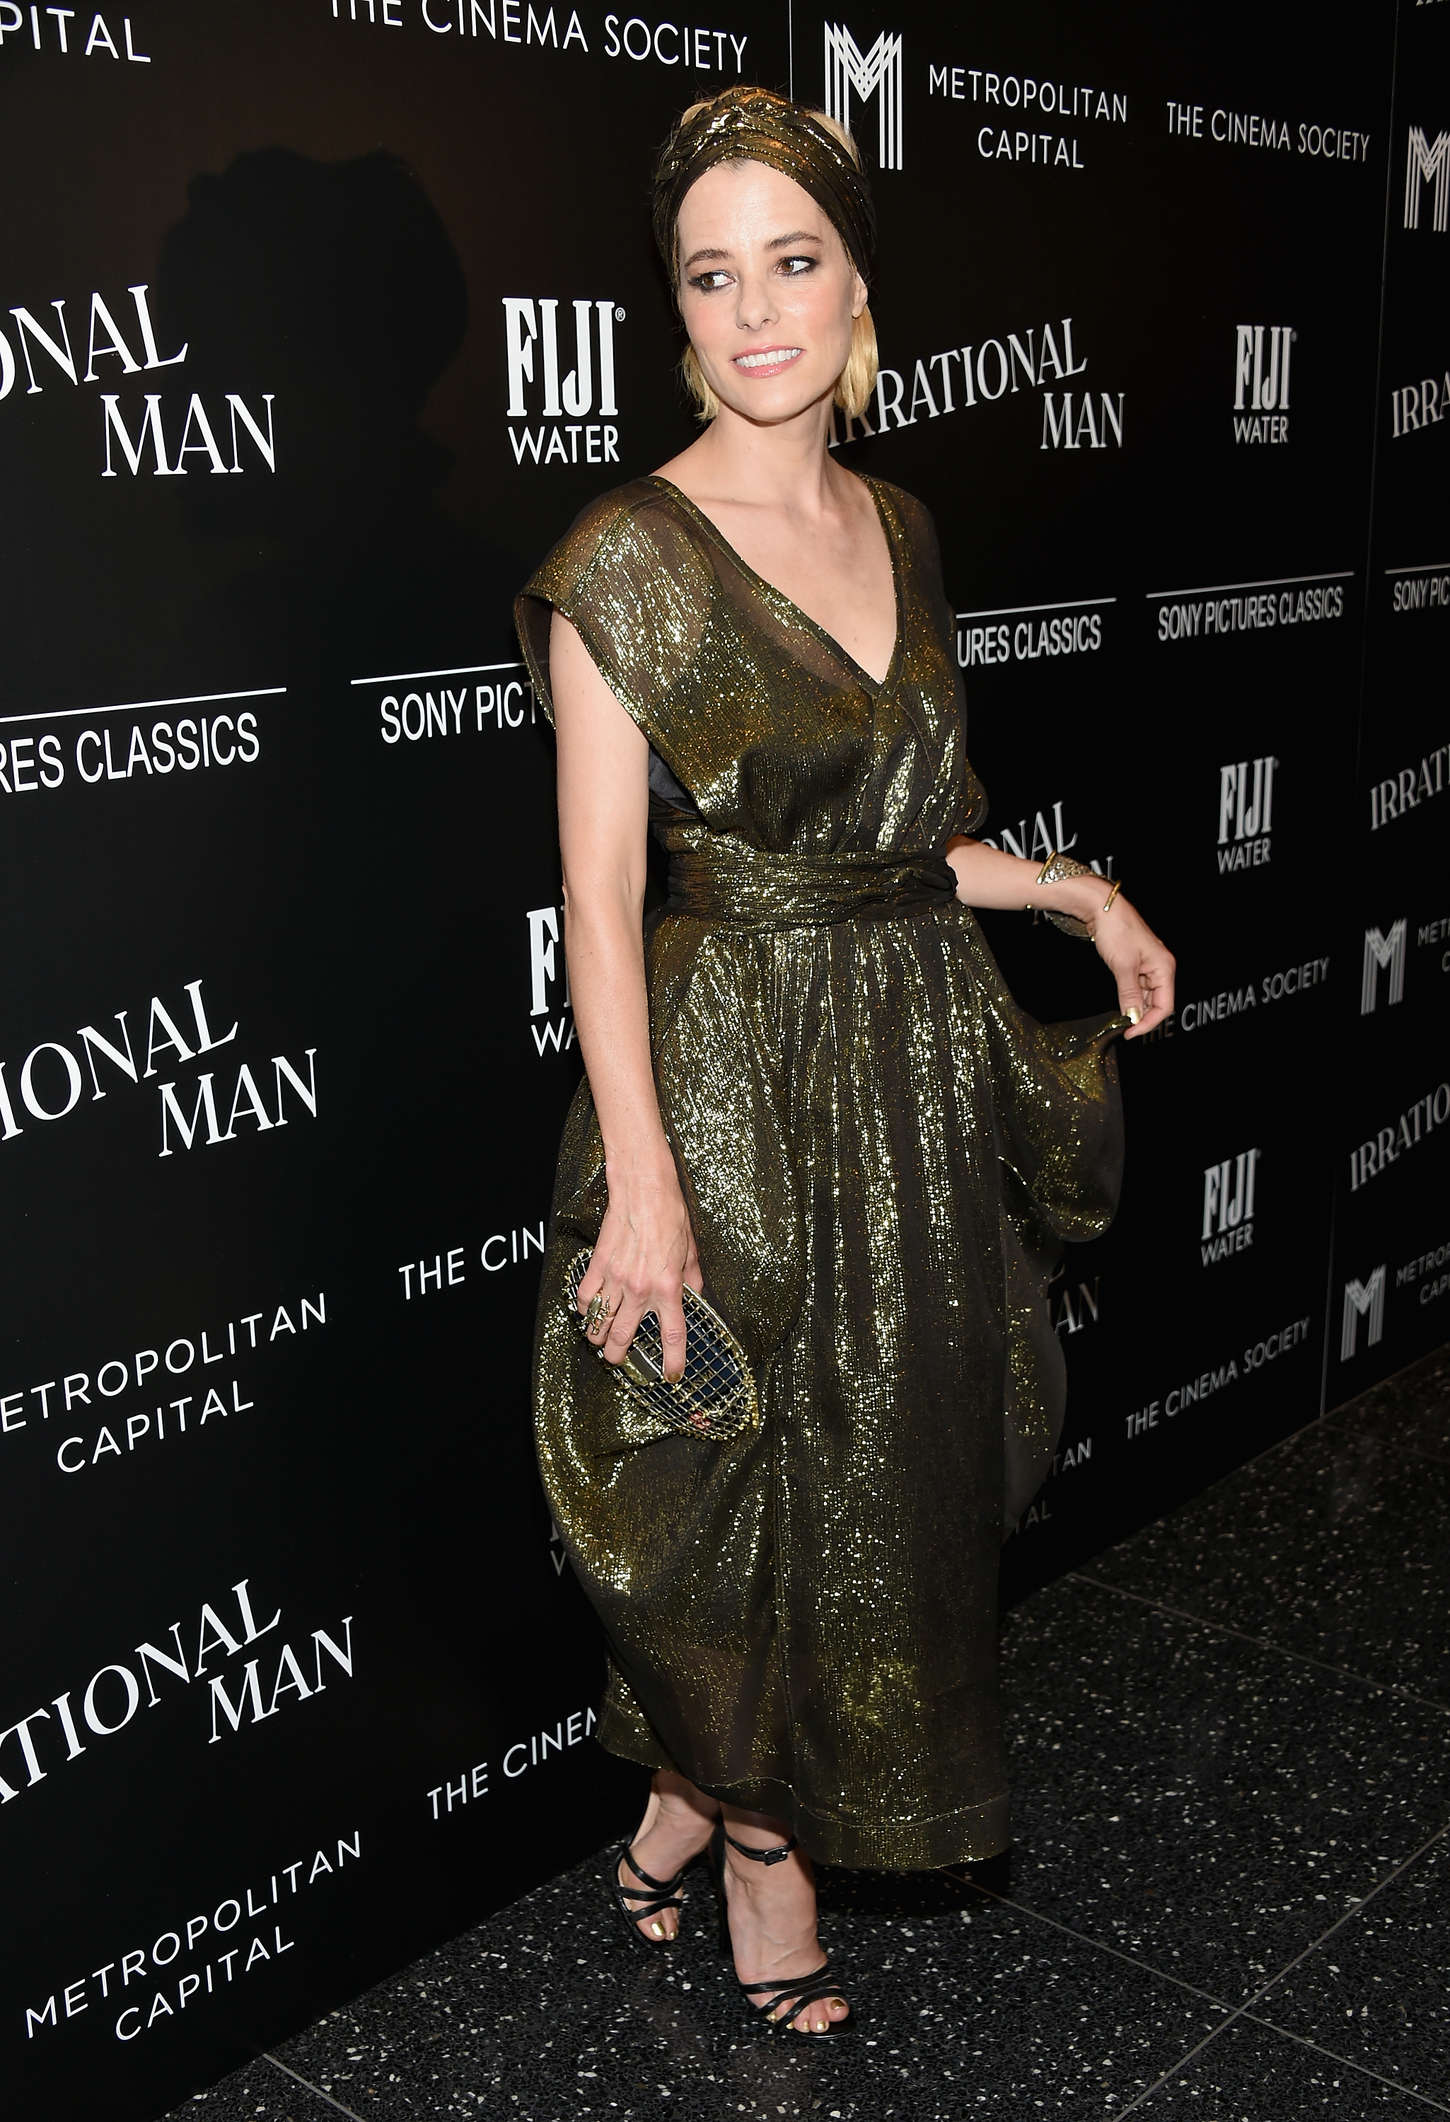 Parker Posey Irrational Man Premiere in New York